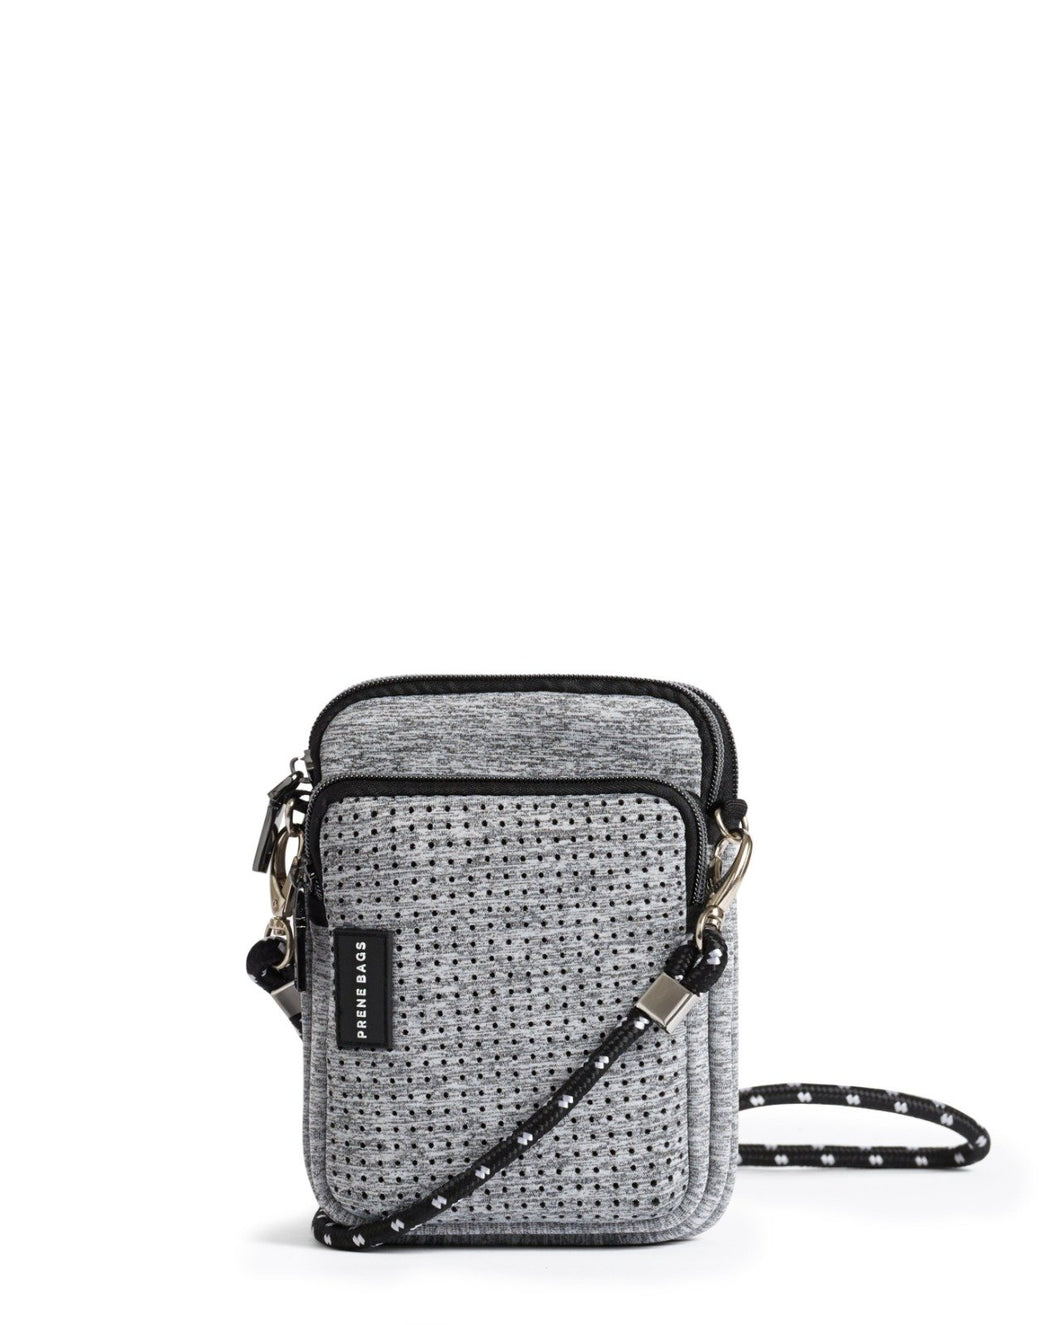 The Mimi Bag - Light Grey Marle by Prene